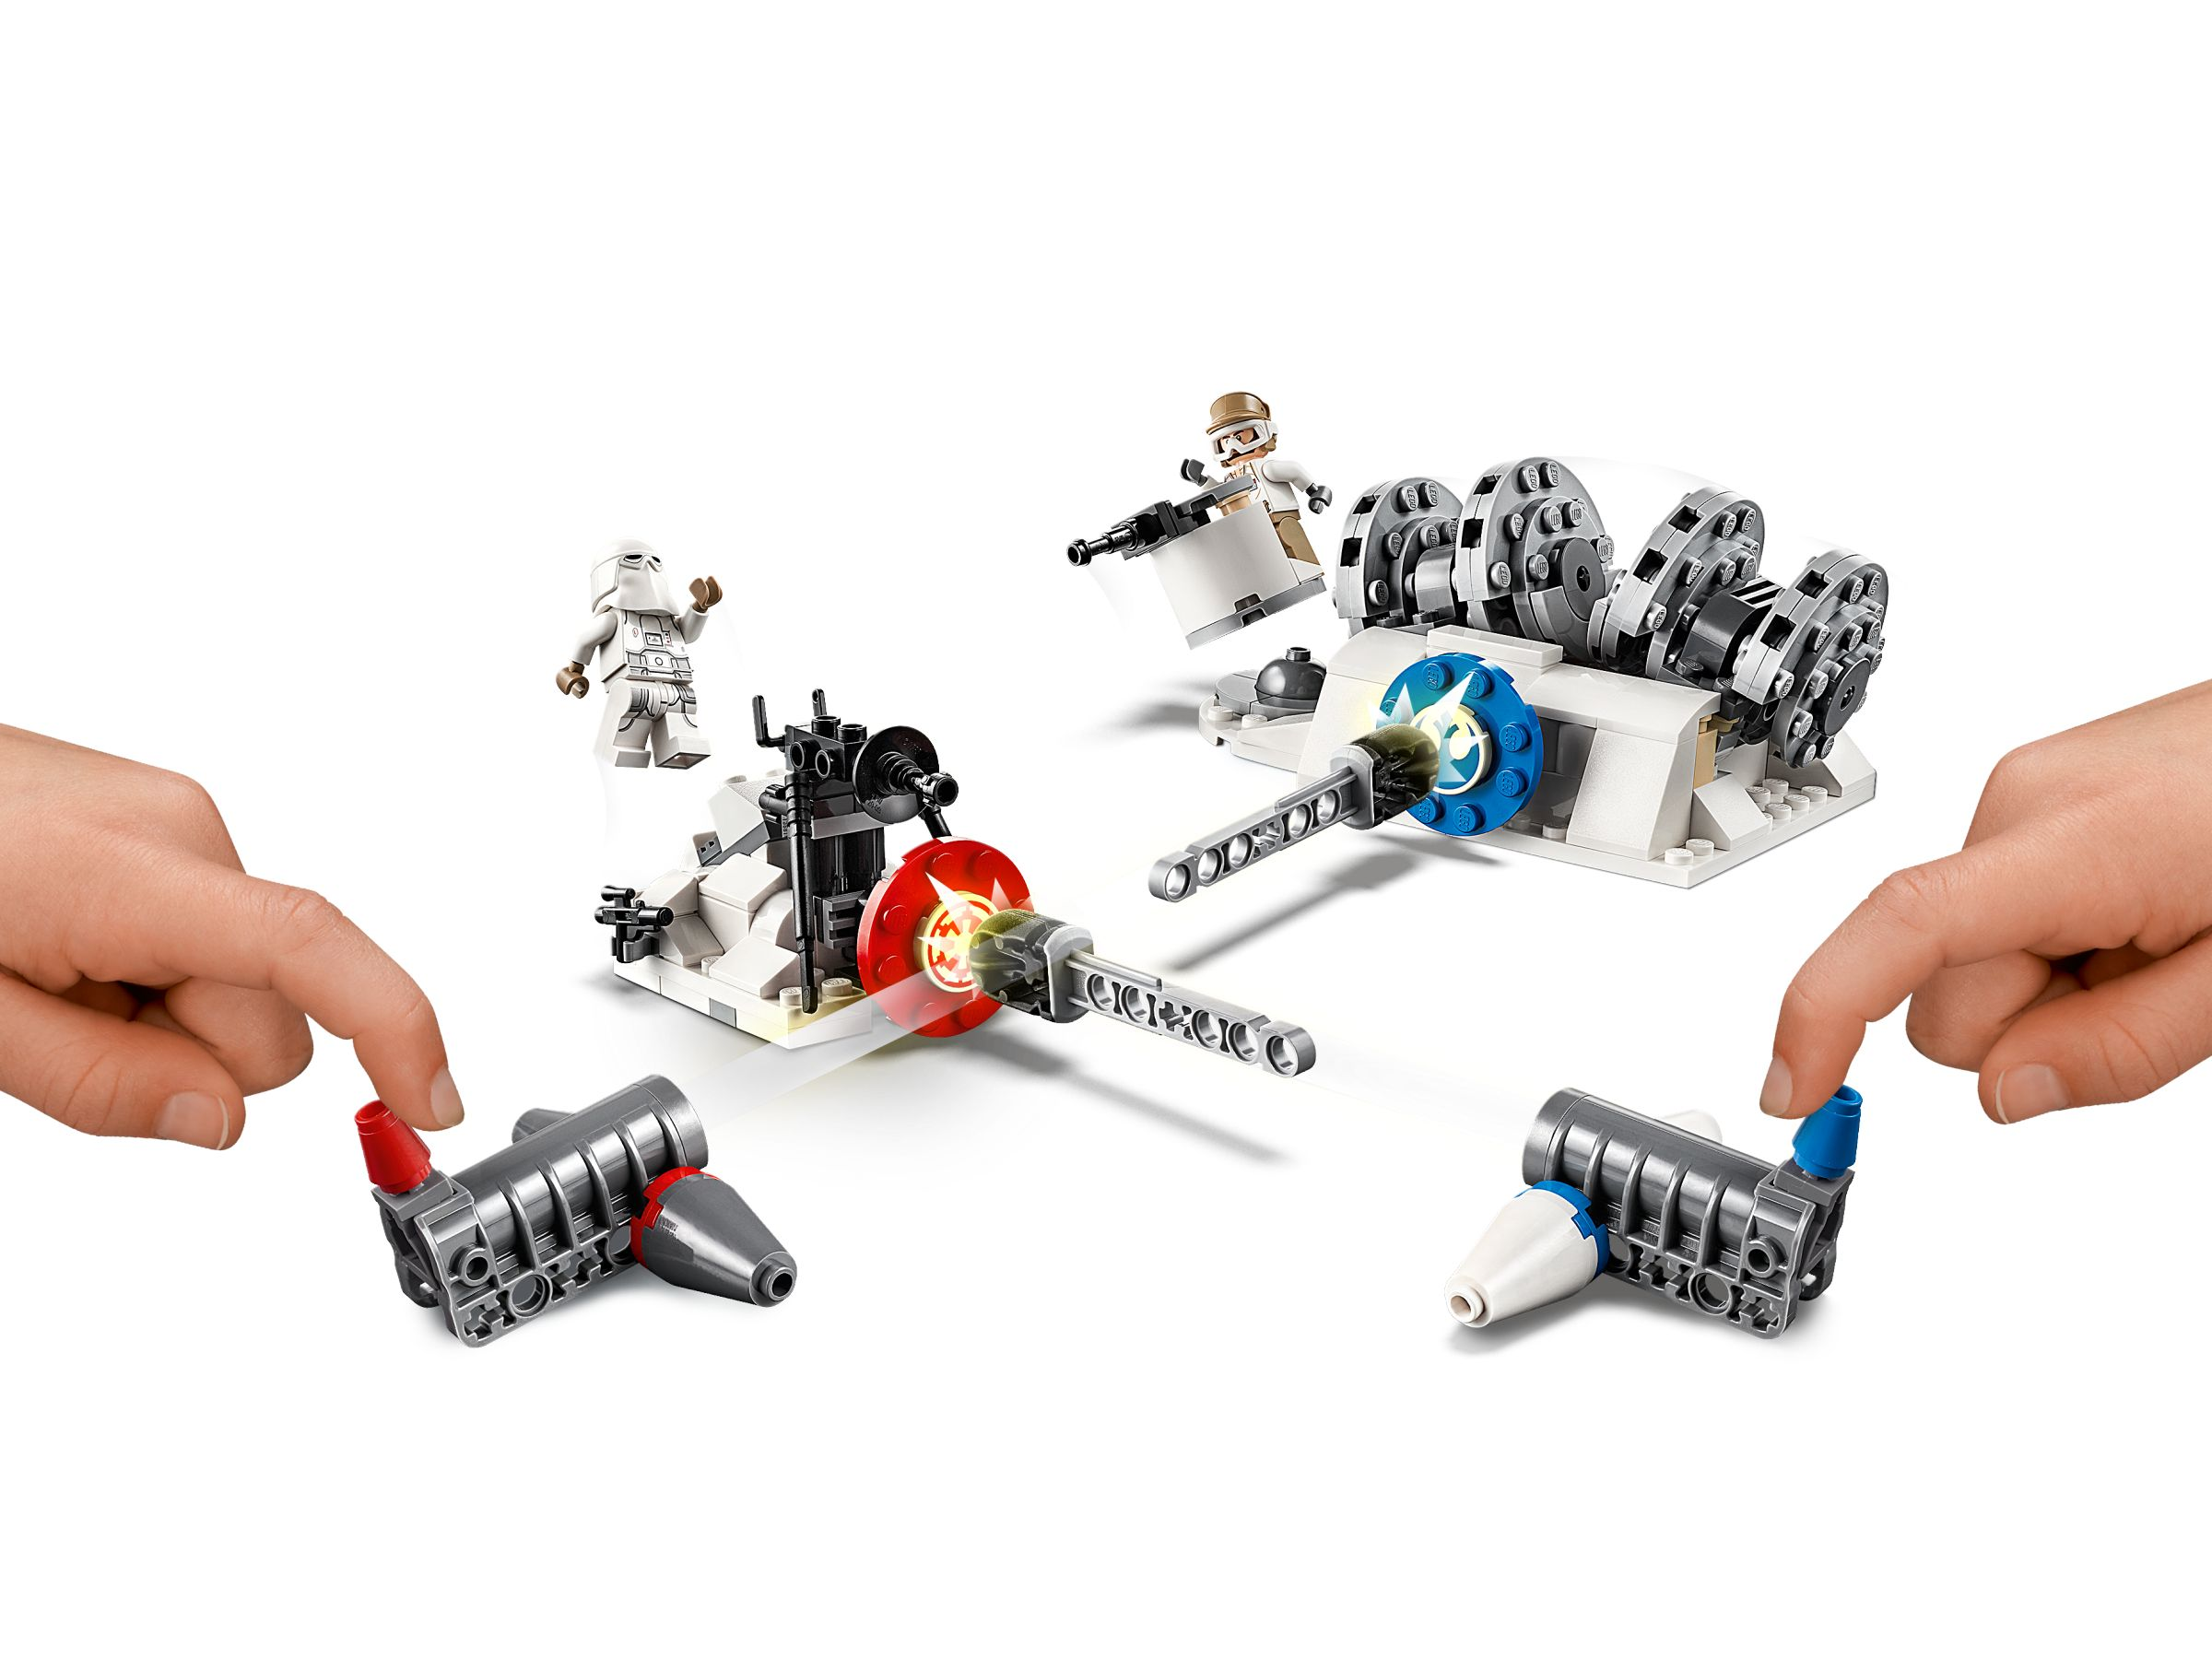 LEGO Star Wars 75239 Action Battle Hoth™ Generator-Attacke LEGO_75239_alt2.jpg